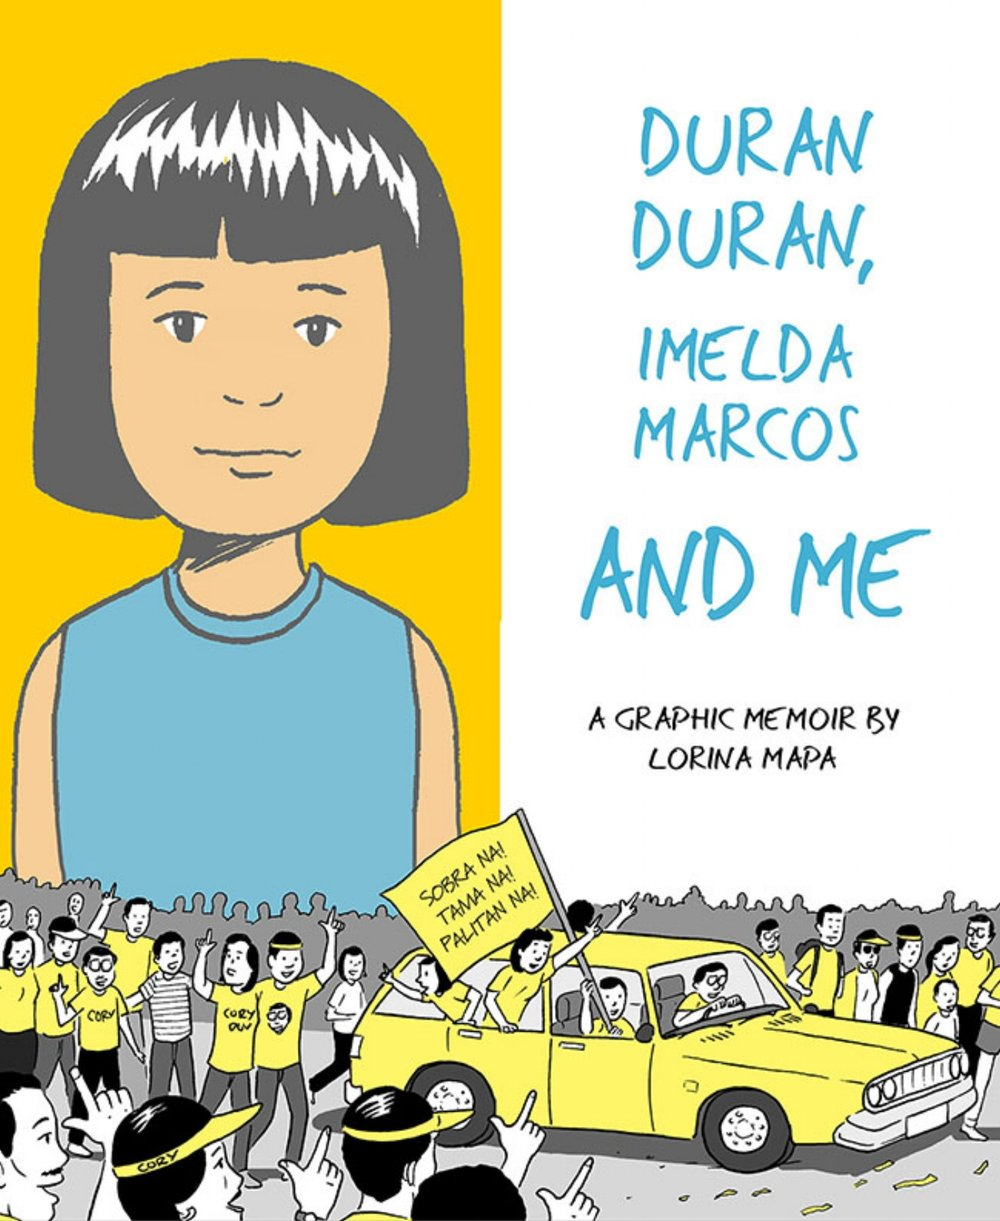 Lorina Mapa.  Duran Duran, Imelda Marcos, and Me.  Conundrum Press. $18.00, 140 pp. ISBN: 9781772620115